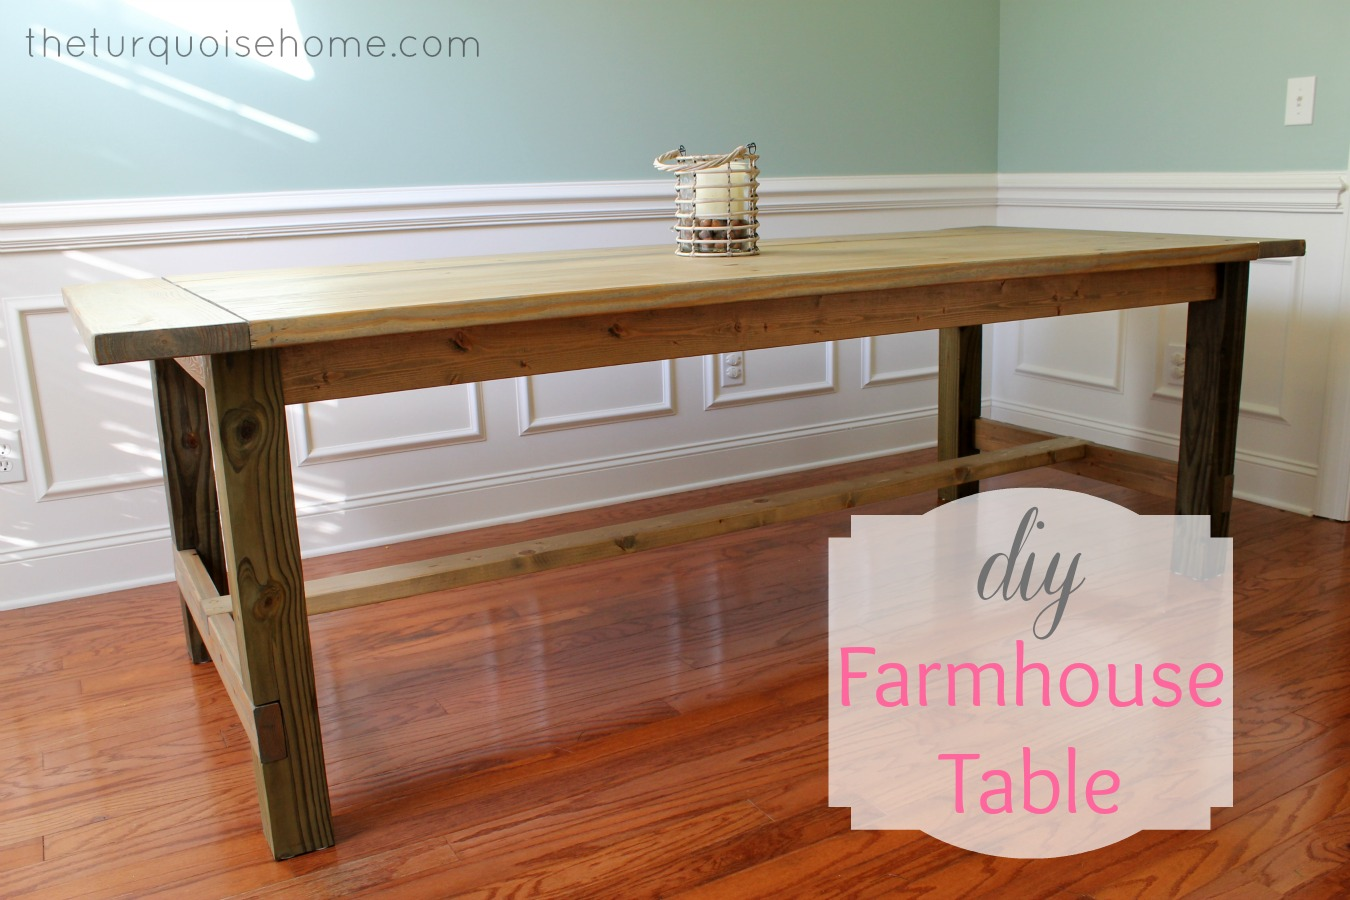 Build Dining Room Table diy farmhouse table {for less than $100} | the turquoise home